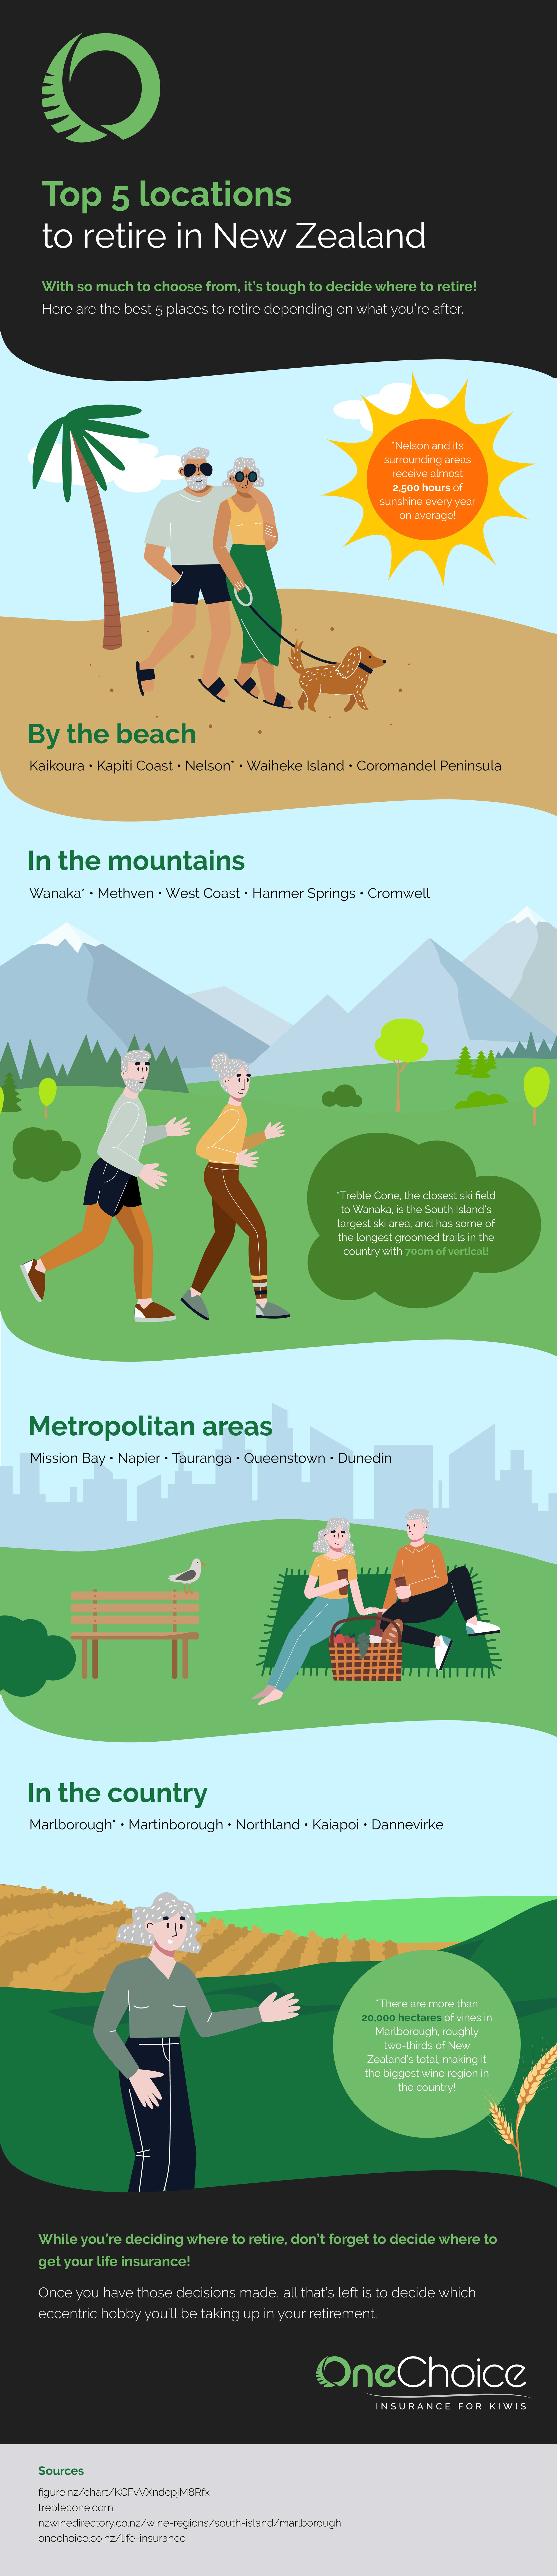 infographic of top 5 locations to retire in New Zealand